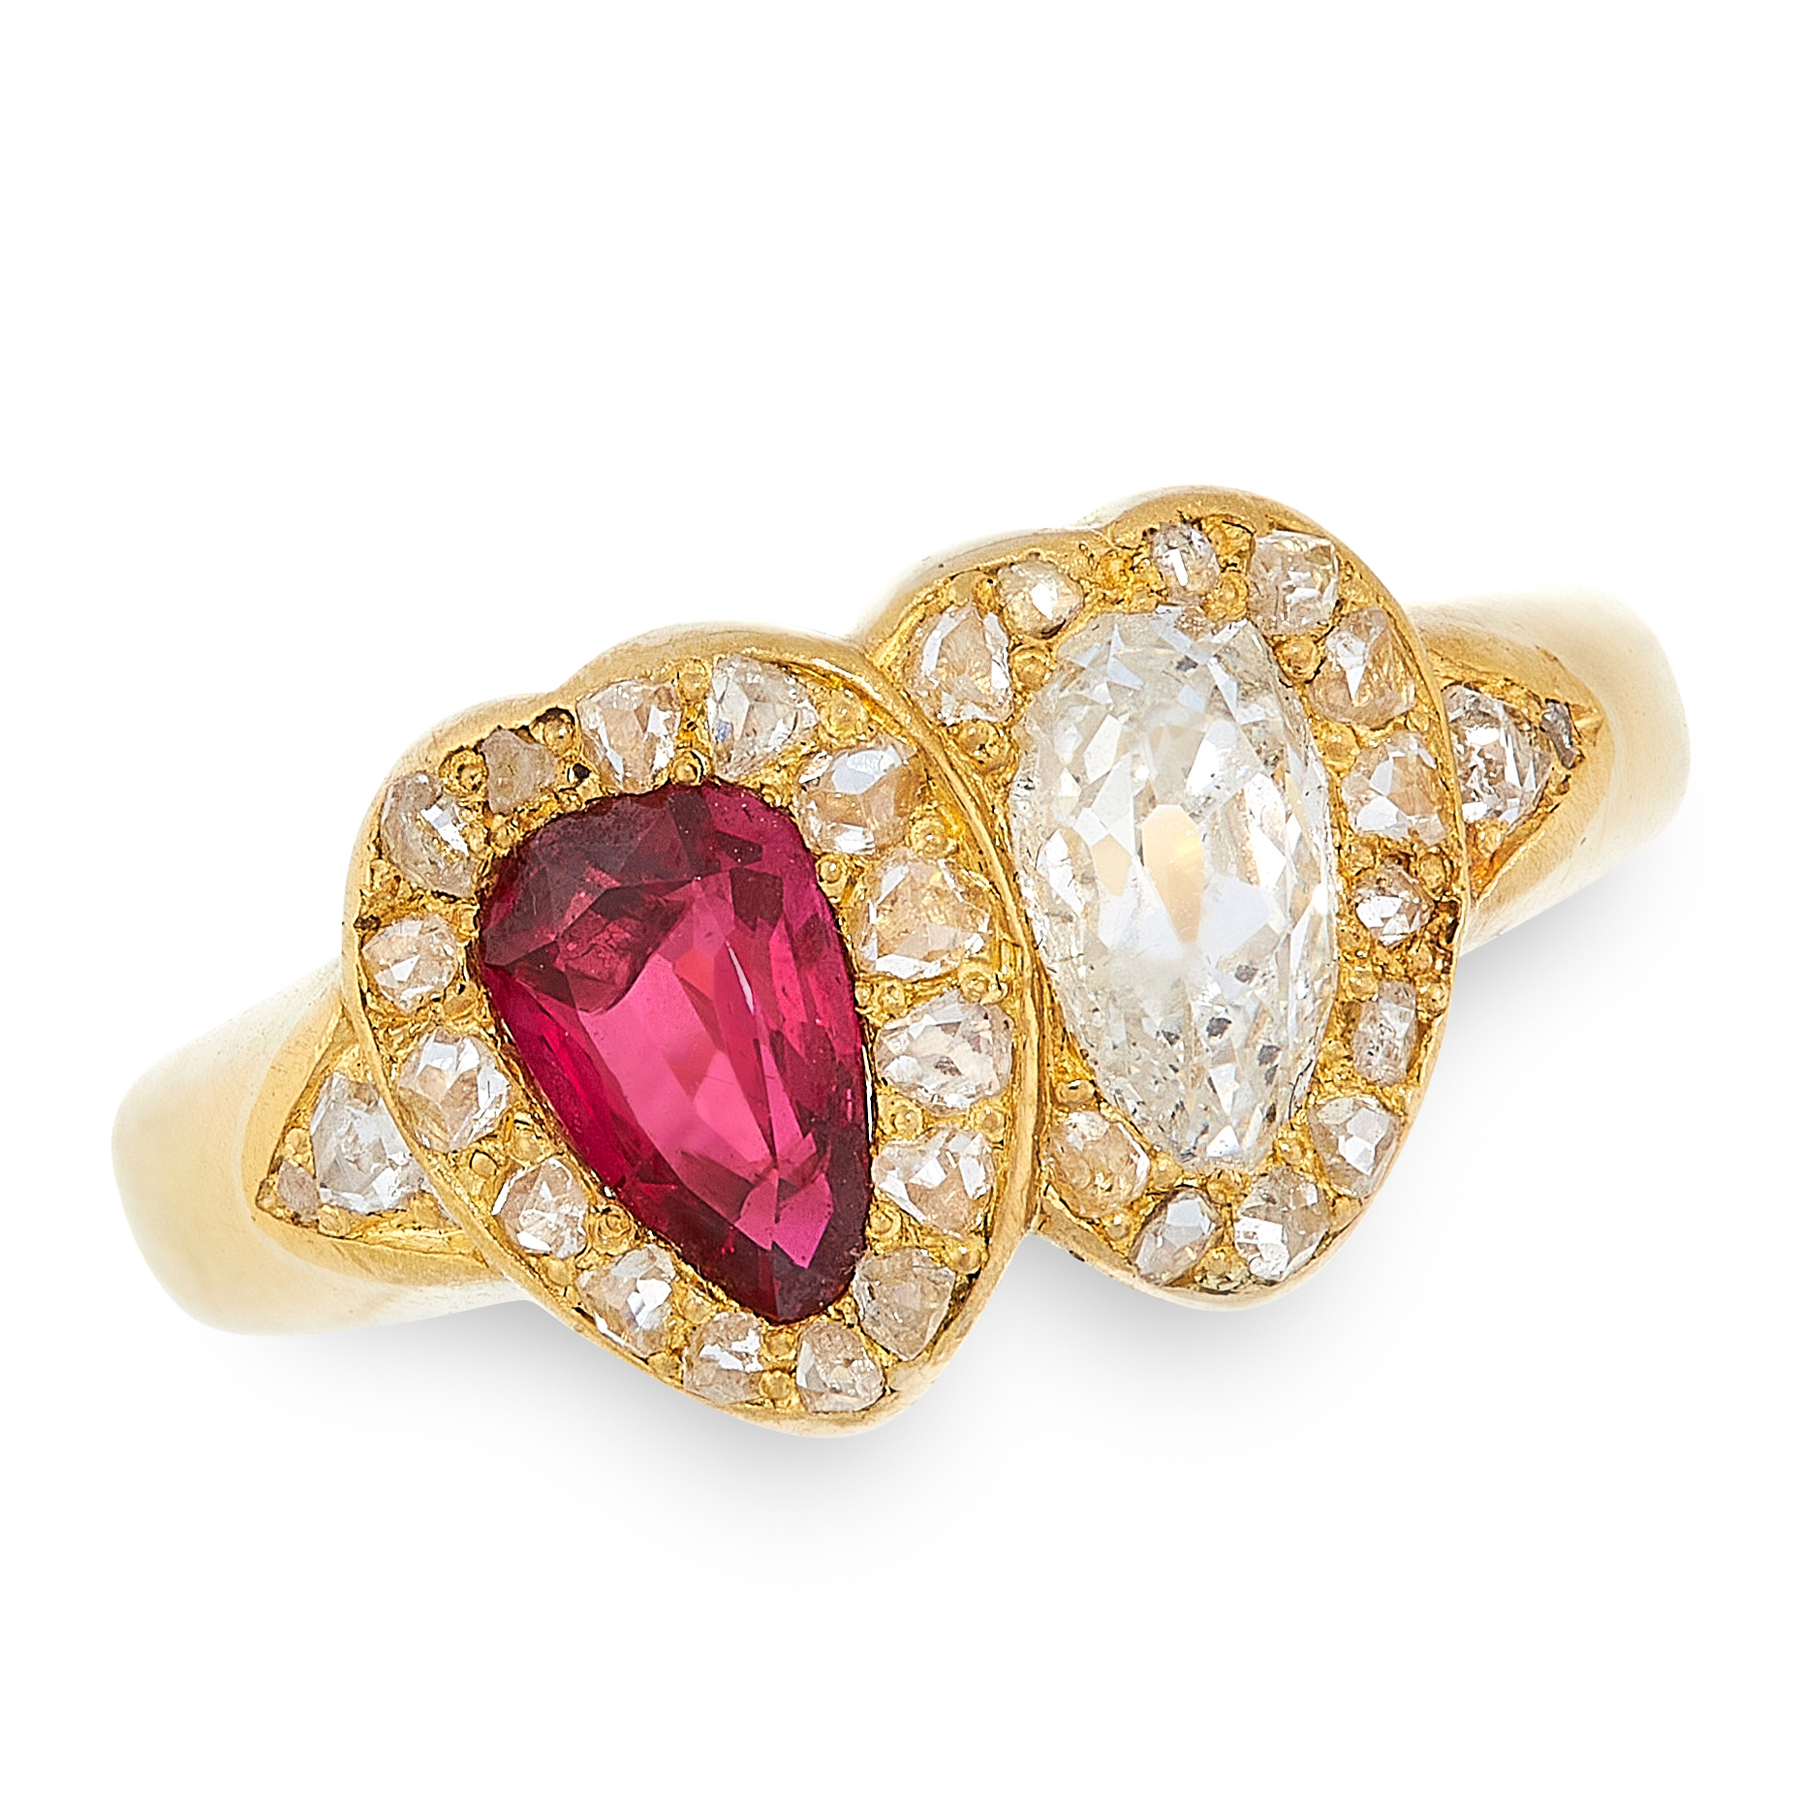 A RUBY AND DIAMOND SWEETHEART RING in high carat yellow gold, designed as two interlocking hearts,